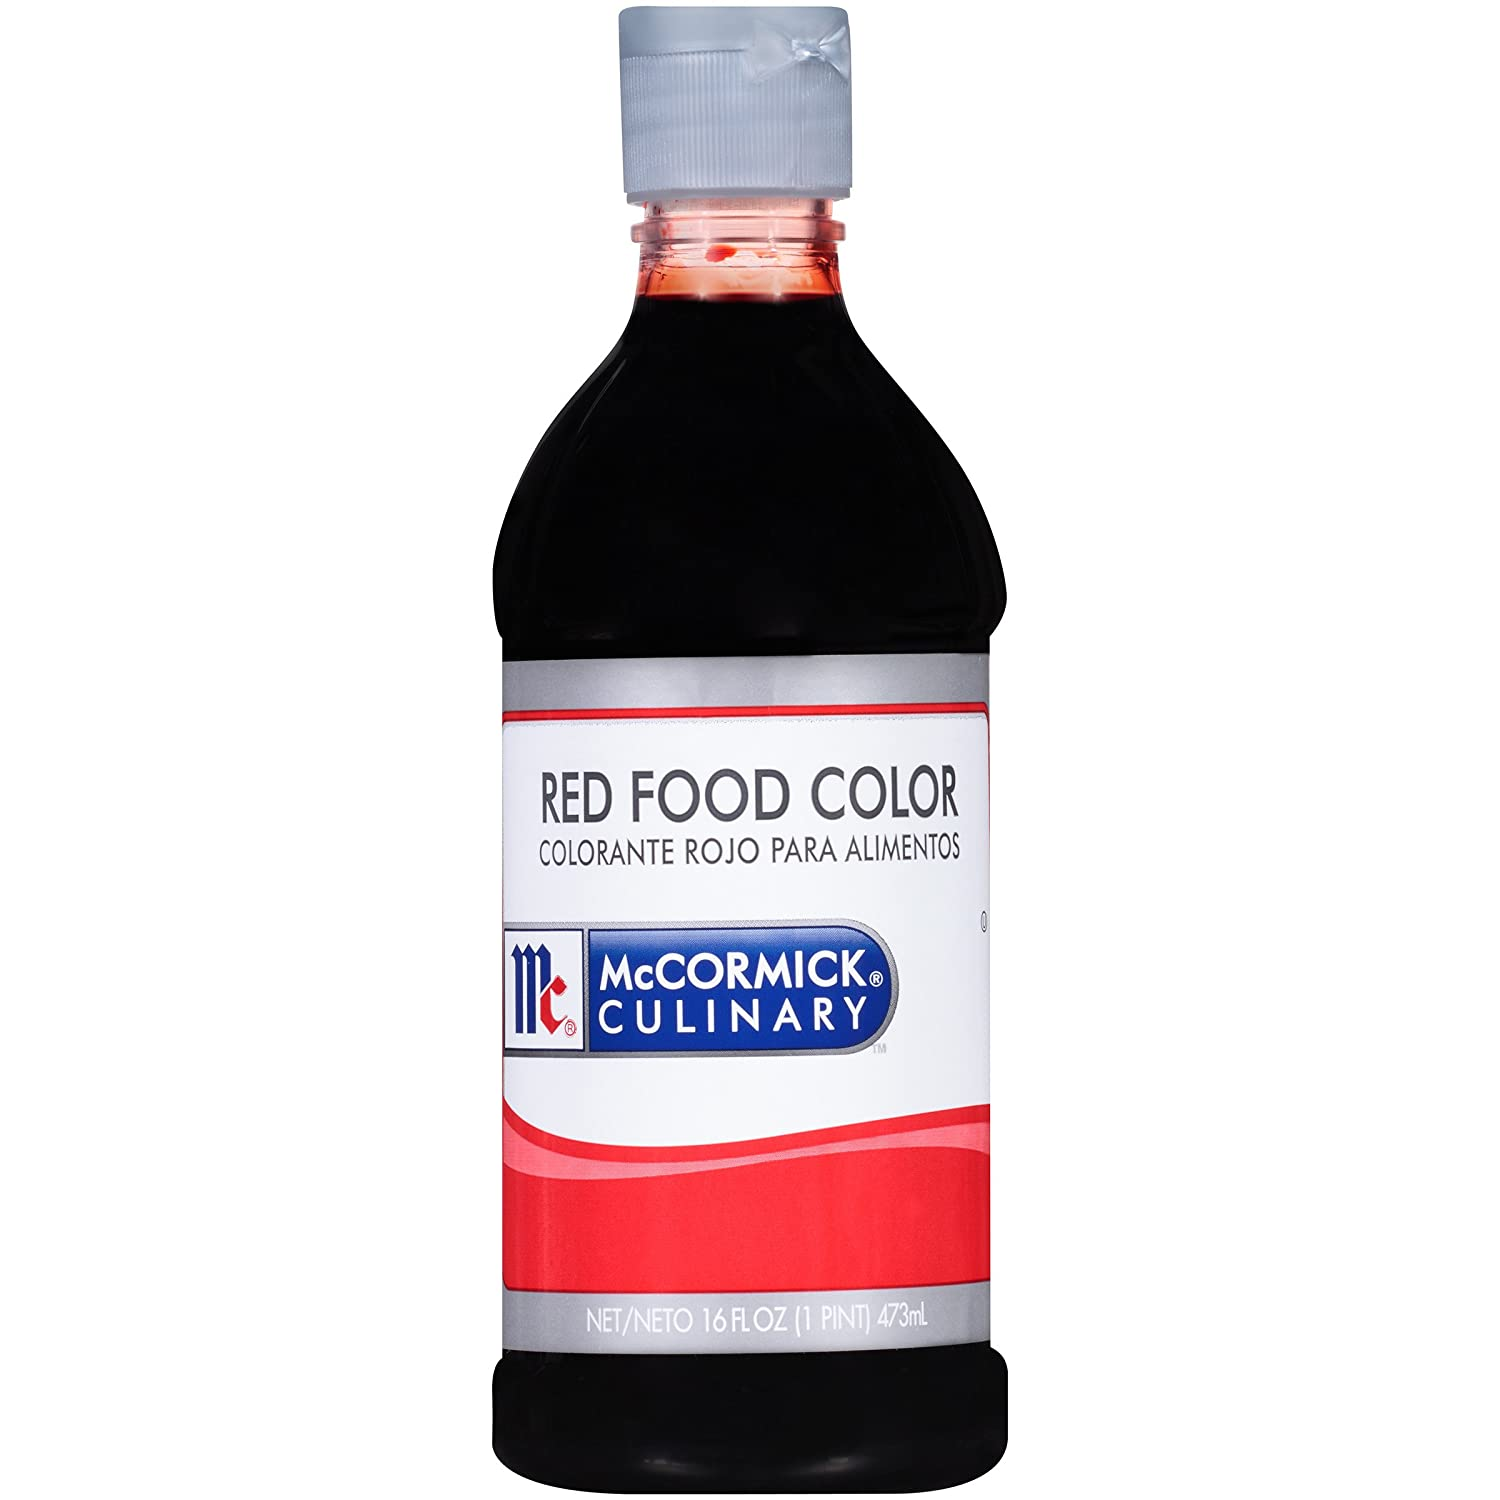 Amazon.com : McCormick Culinary Red Food Color, 16 fl oz, Premium ...